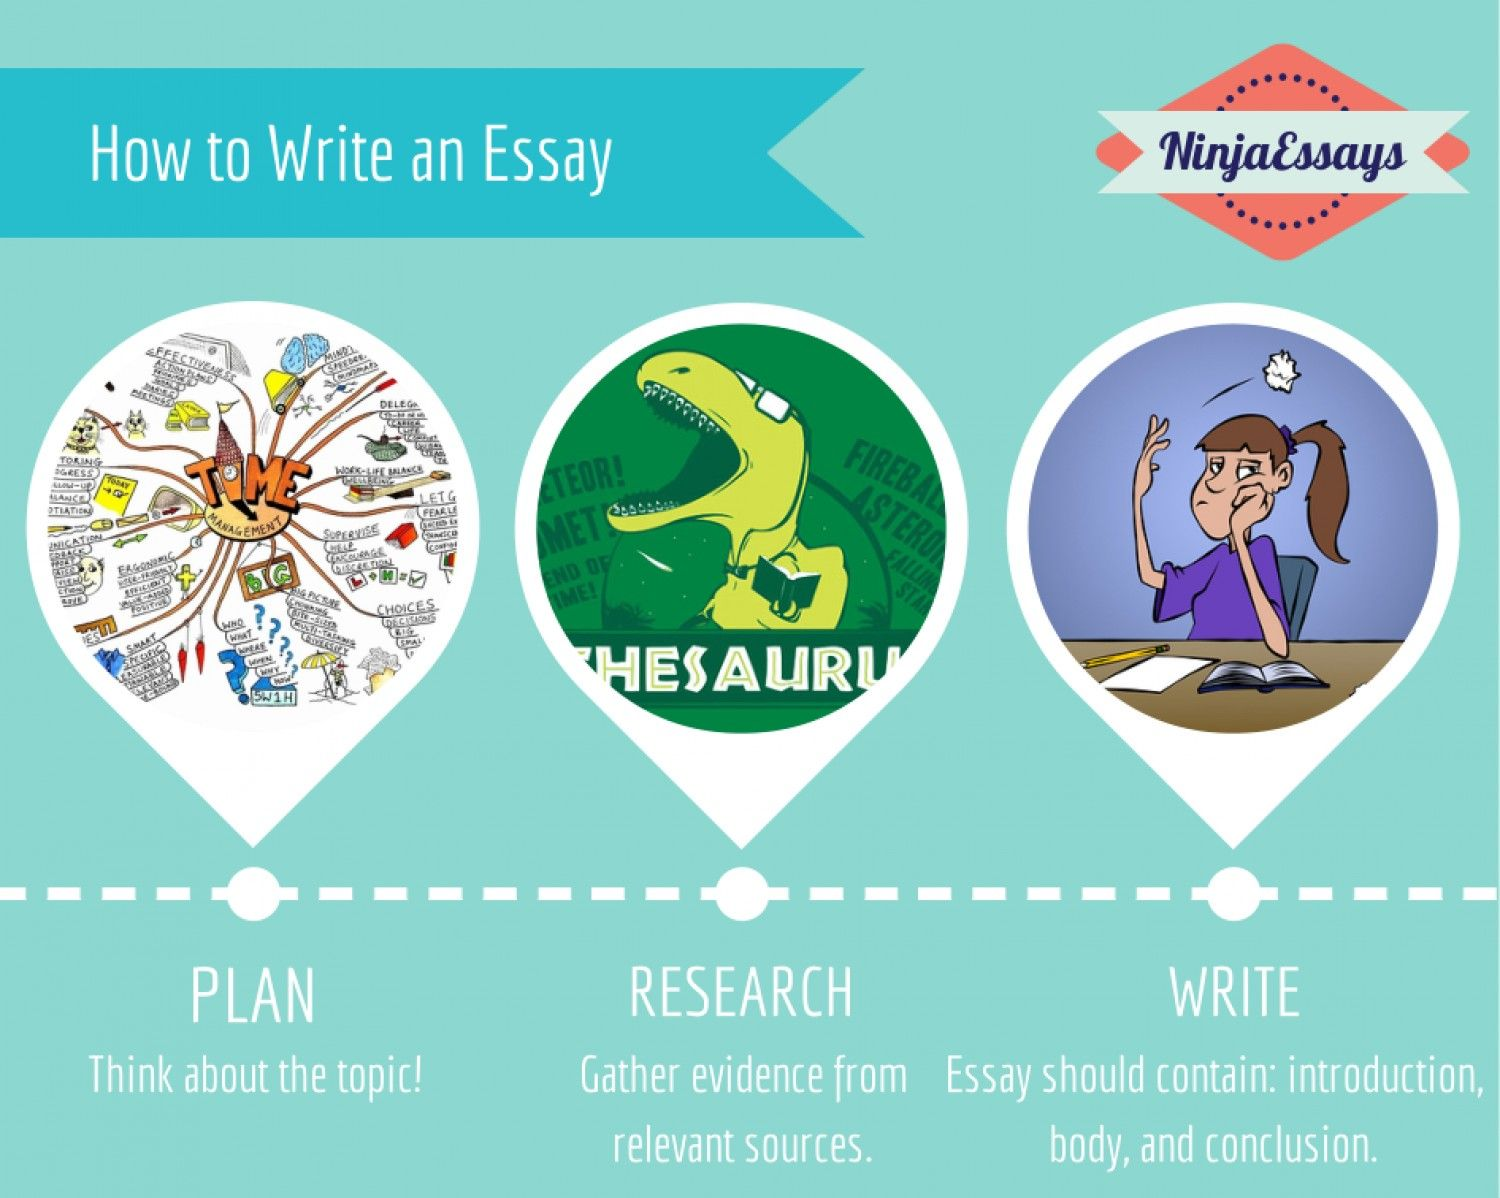 defining art essay Below is an essay on defining art from anti essays, your source for research papers, essays, and term paper examples art comes in many different forms the ones that are most recognizable are sculpture, paintings, illustrations, drawings, and architecture.